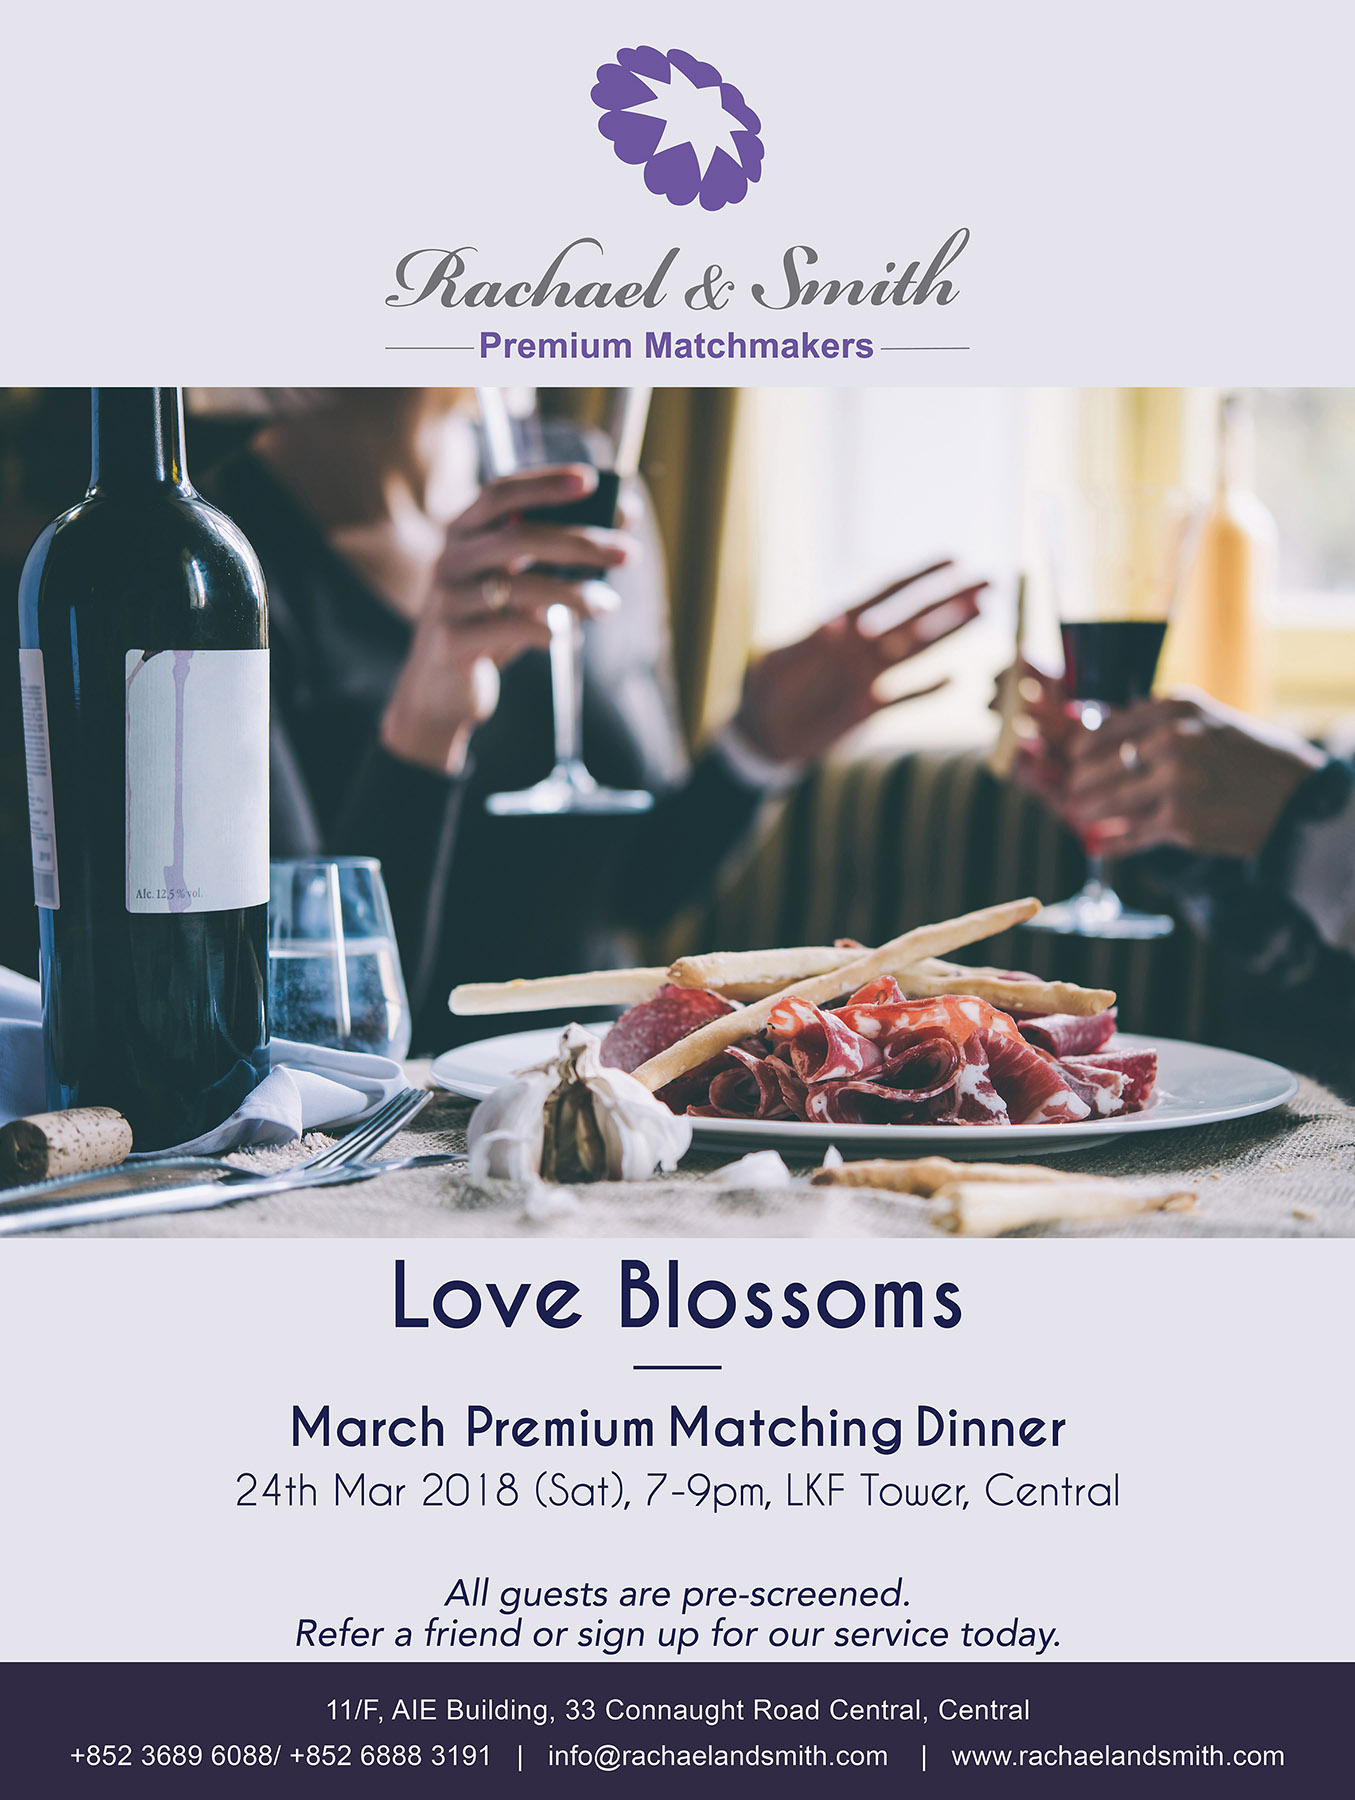 Rachael & Smith, Premium Matchmakers, Premium Dinner